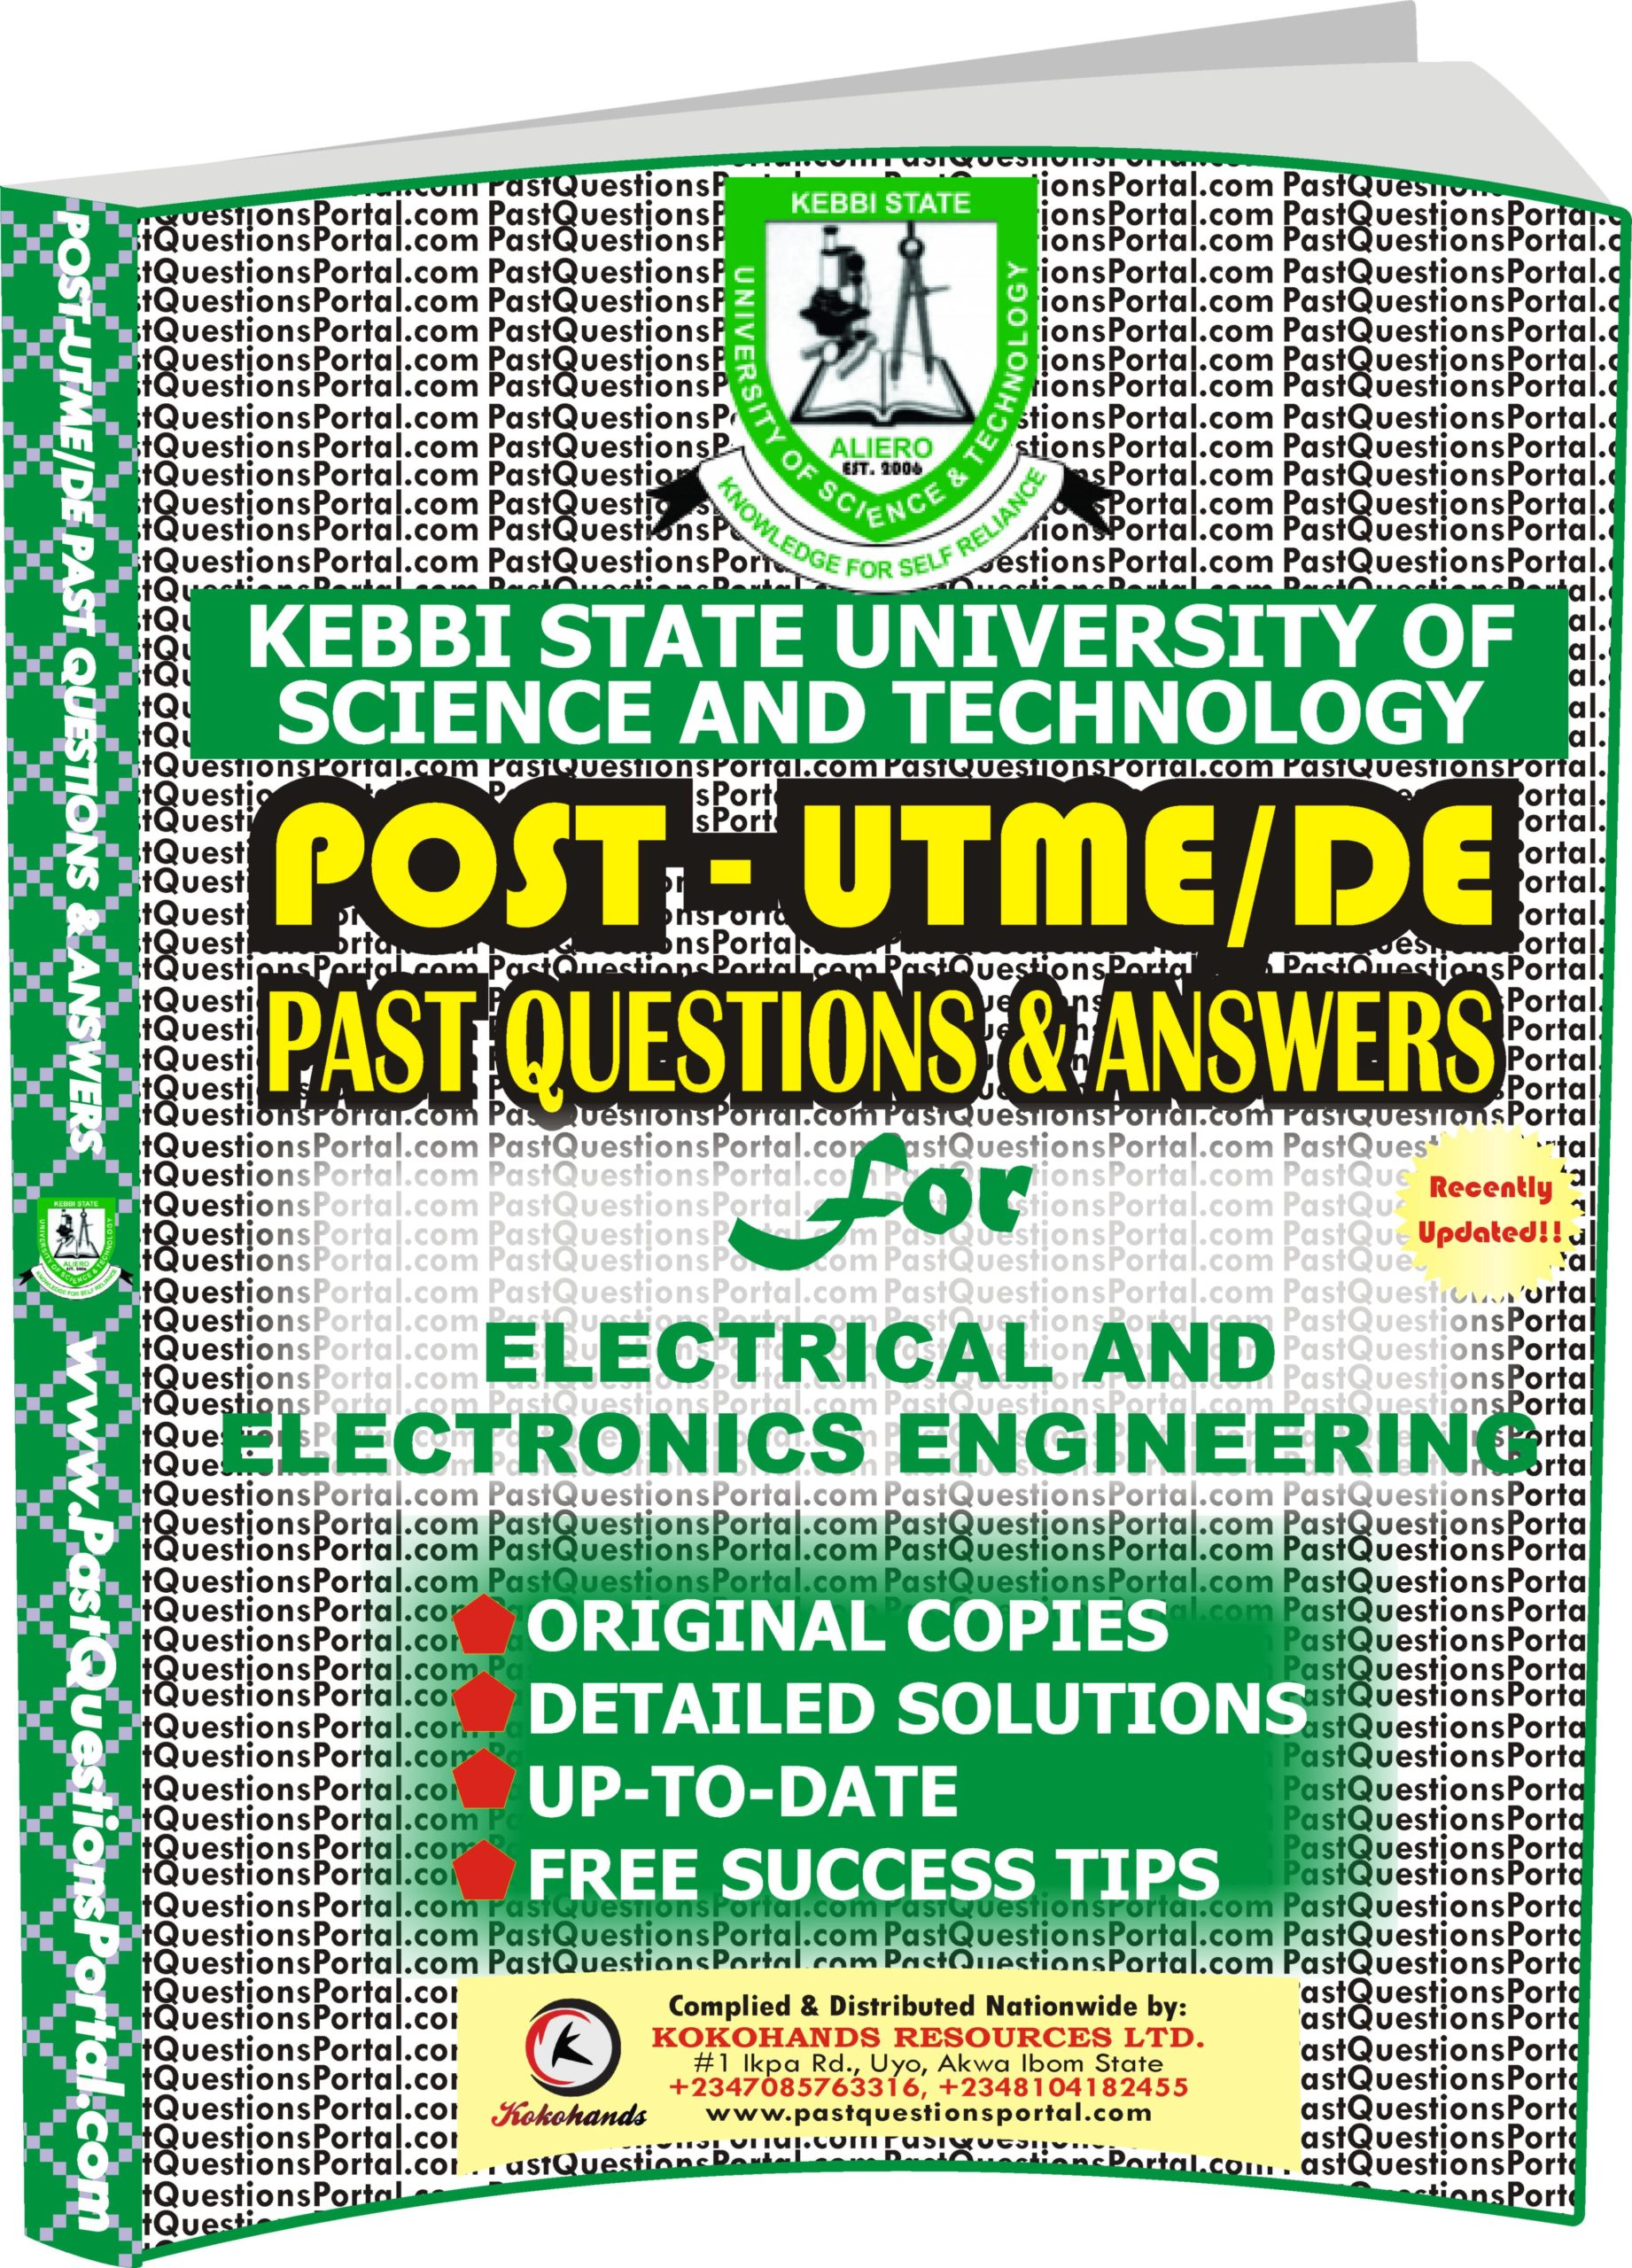 KSUSTA Post UTME Past Questions for Electrical and Electronics Engineering